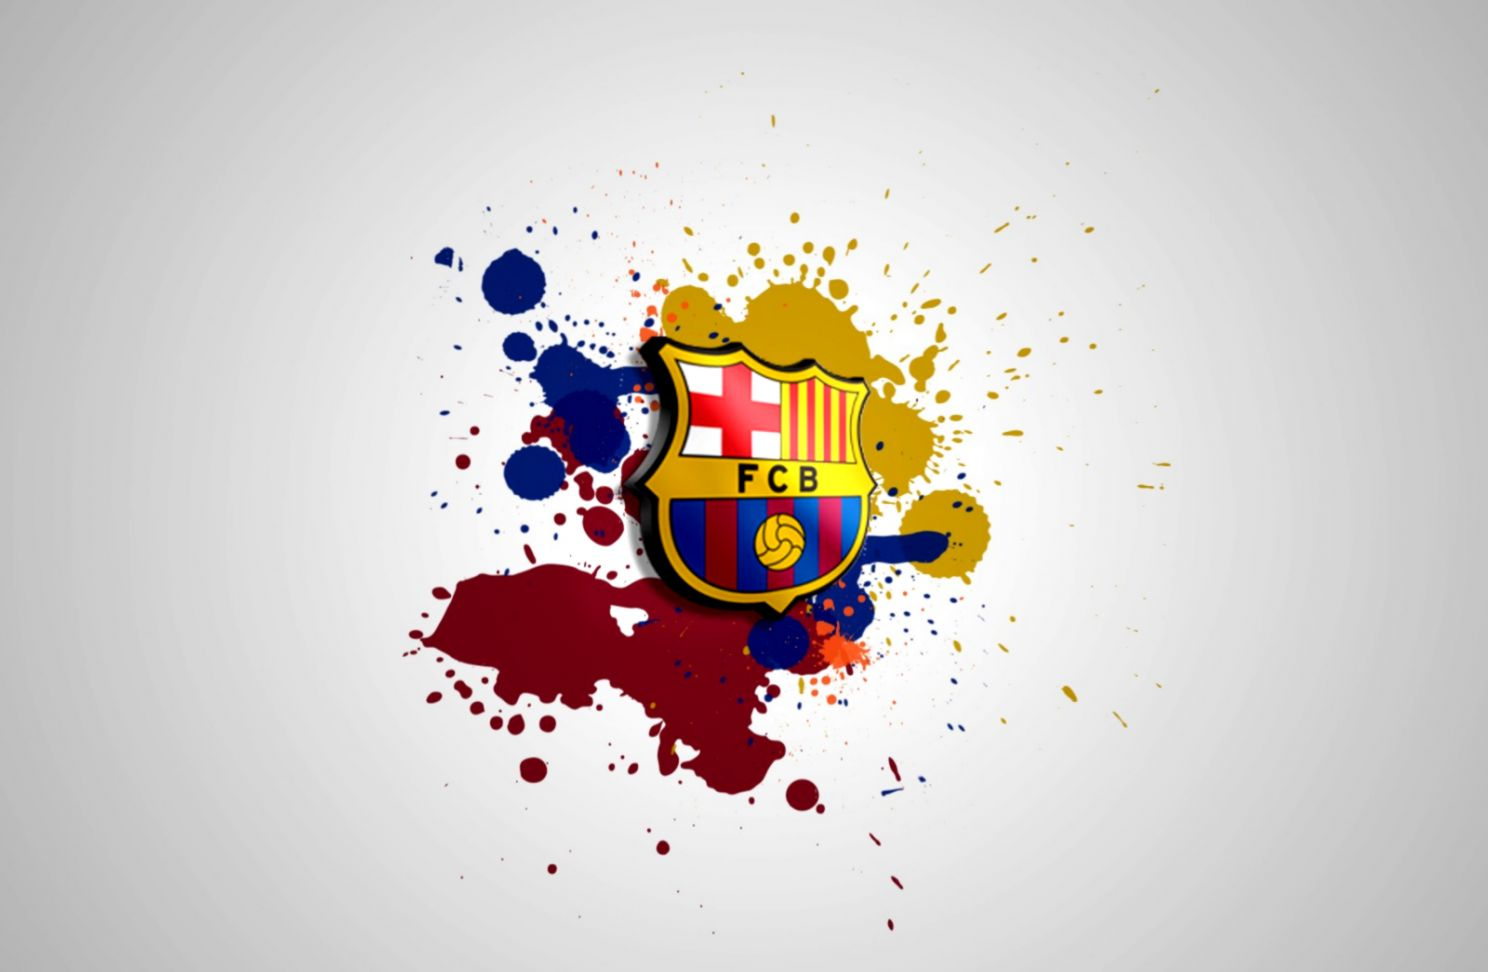 Barcelona Fc Logo 3D Full Hd Wallpaper Desktop ...